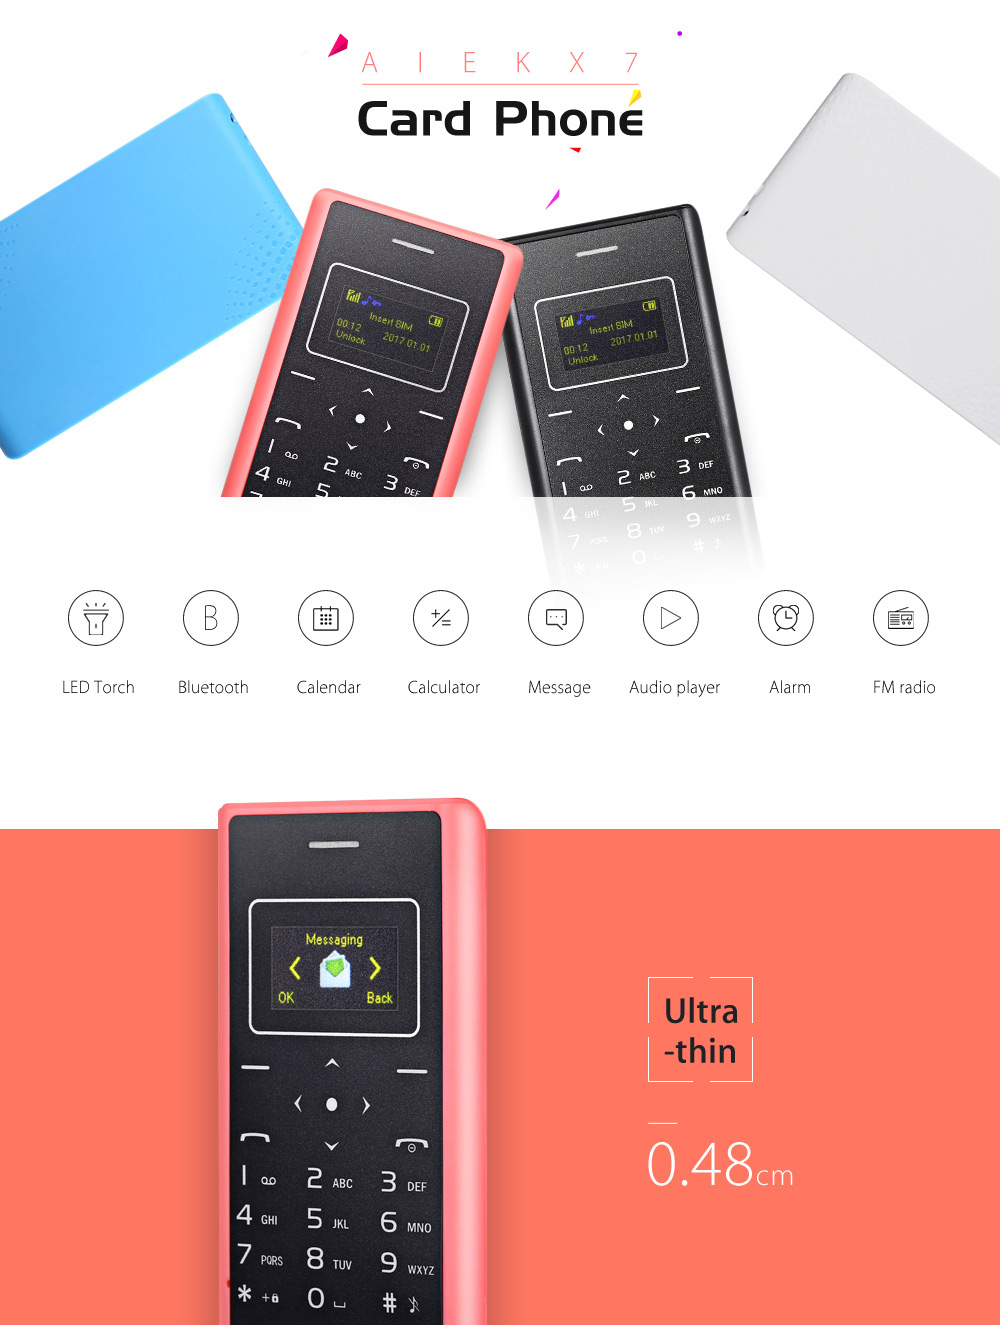 AIEK X7 1 inch Ultra-thin 4.8mm Card Mobile Phone Low Radiation with FM Radio Audio Player Alarm LED Torch